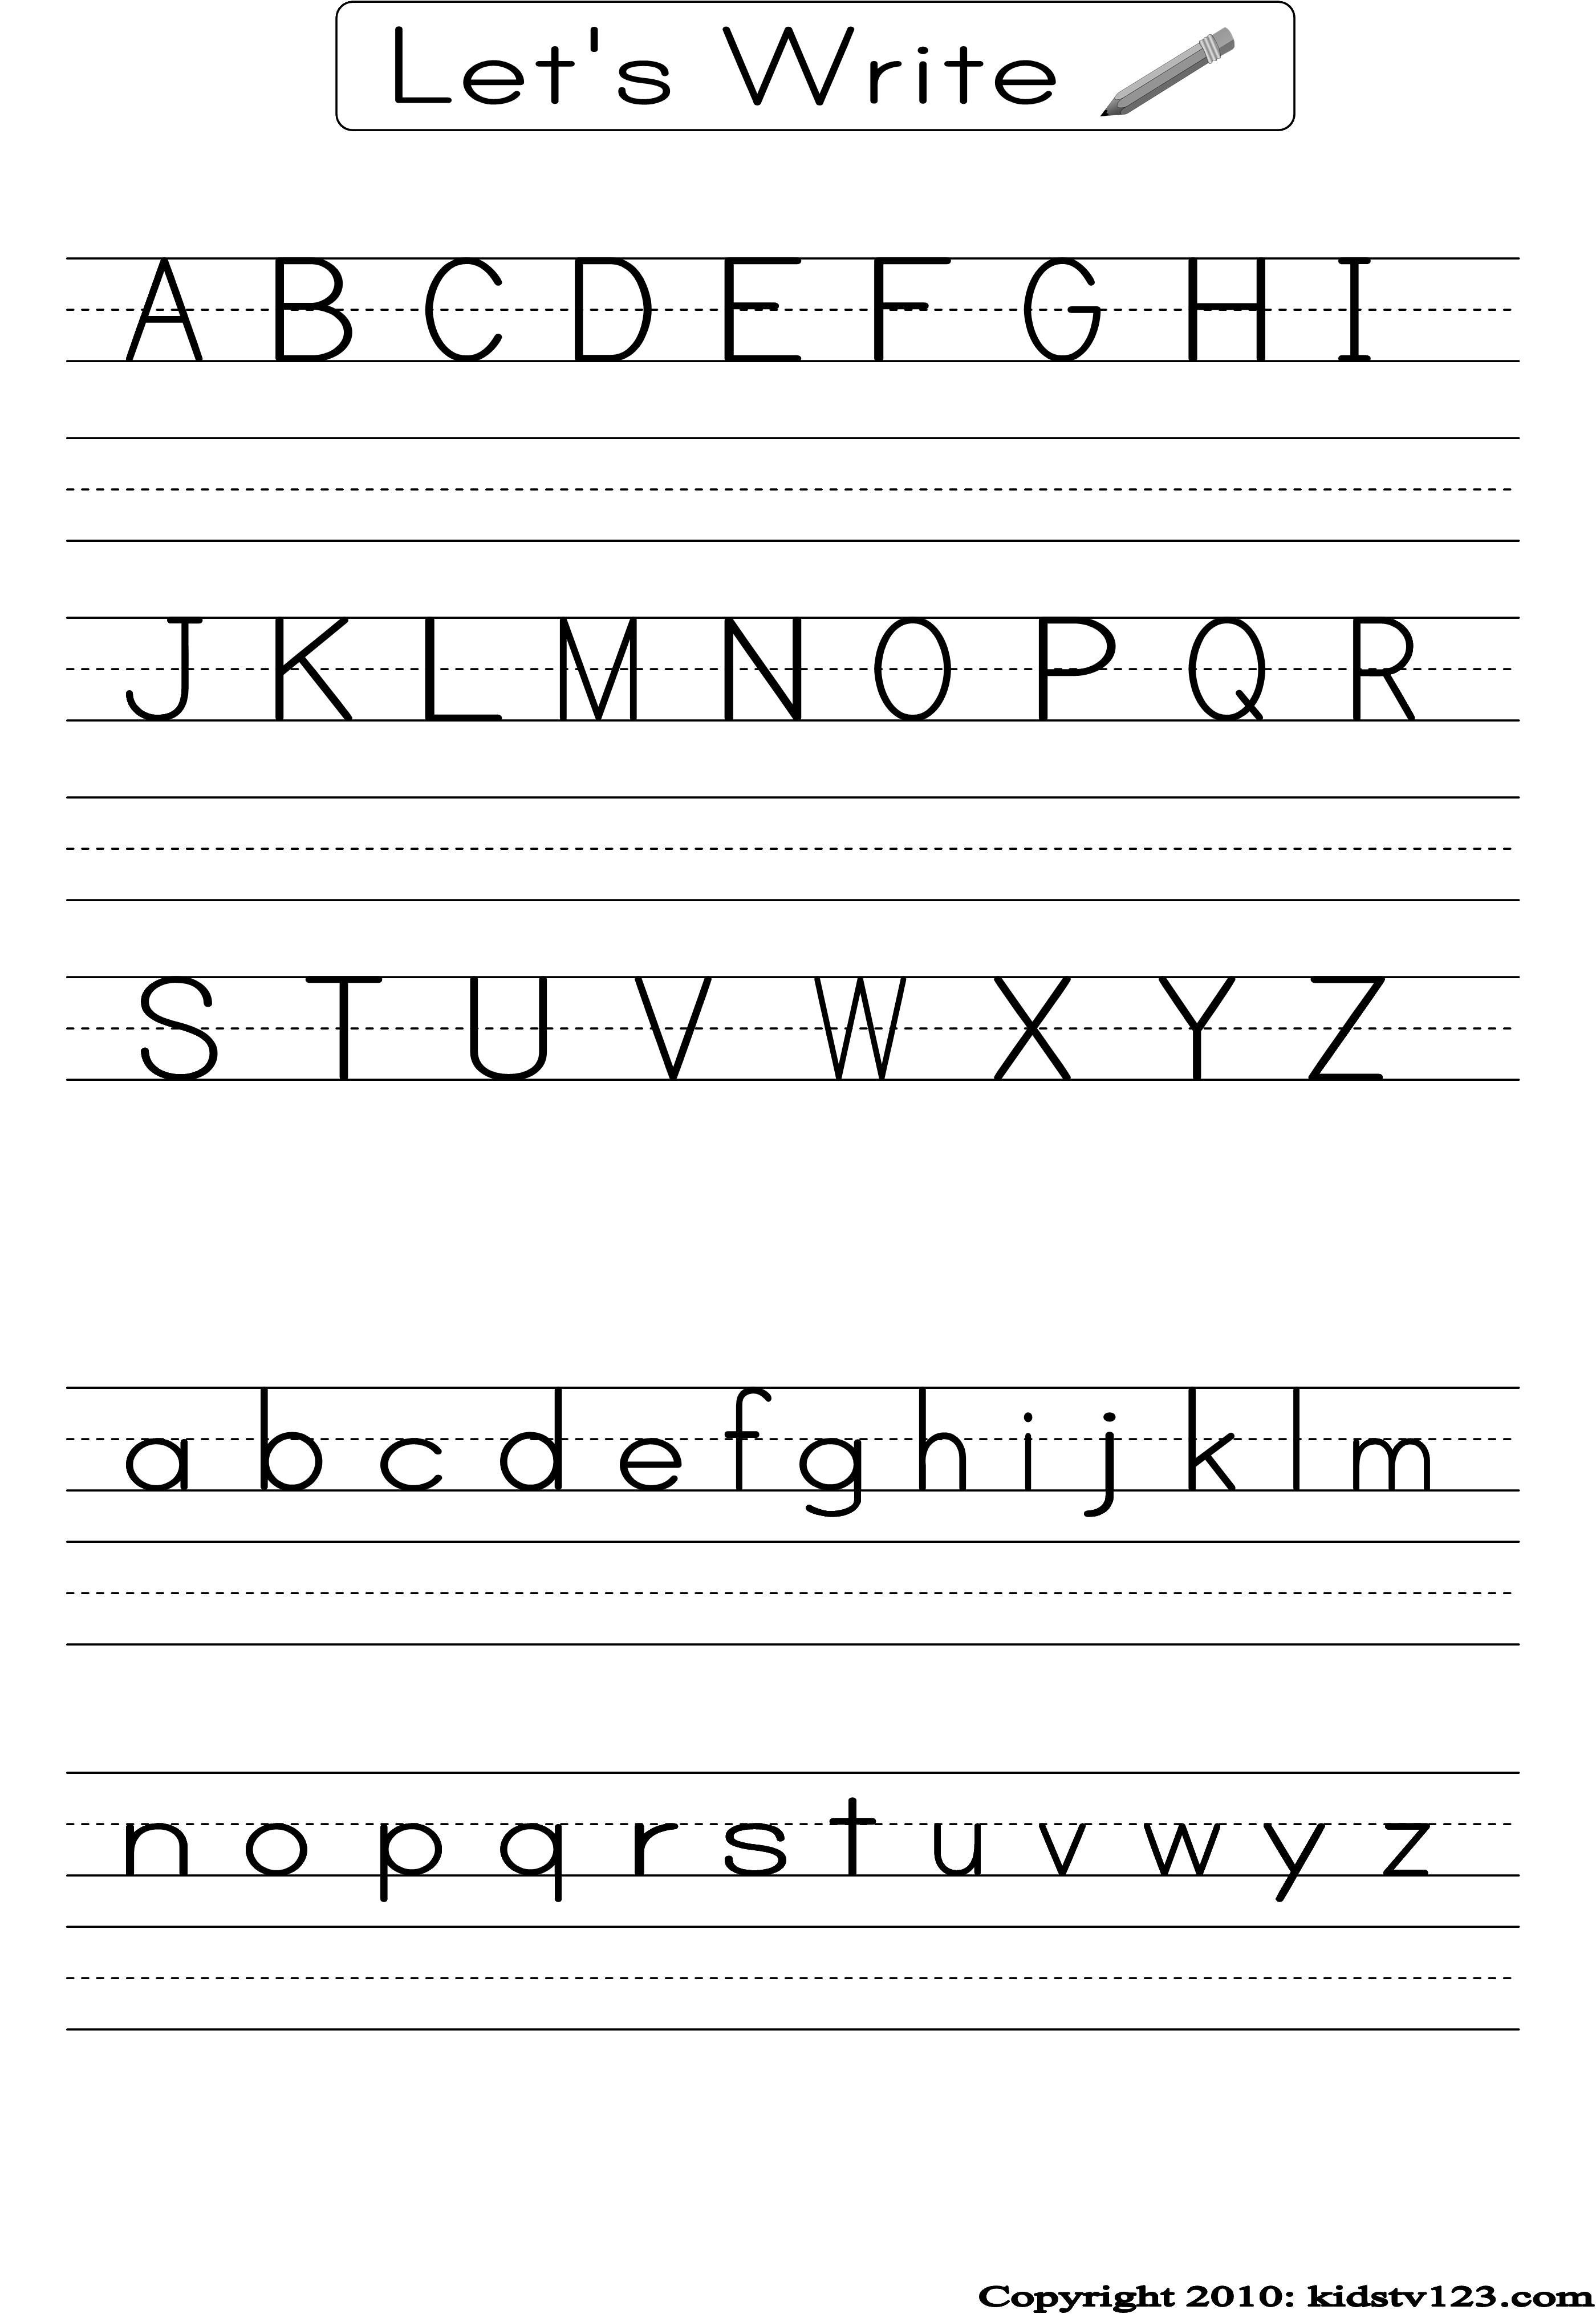 hight resolution of 897502e4311627d8b756184483c0d2ea.png (2799×4057)   Alphabet writing  practice